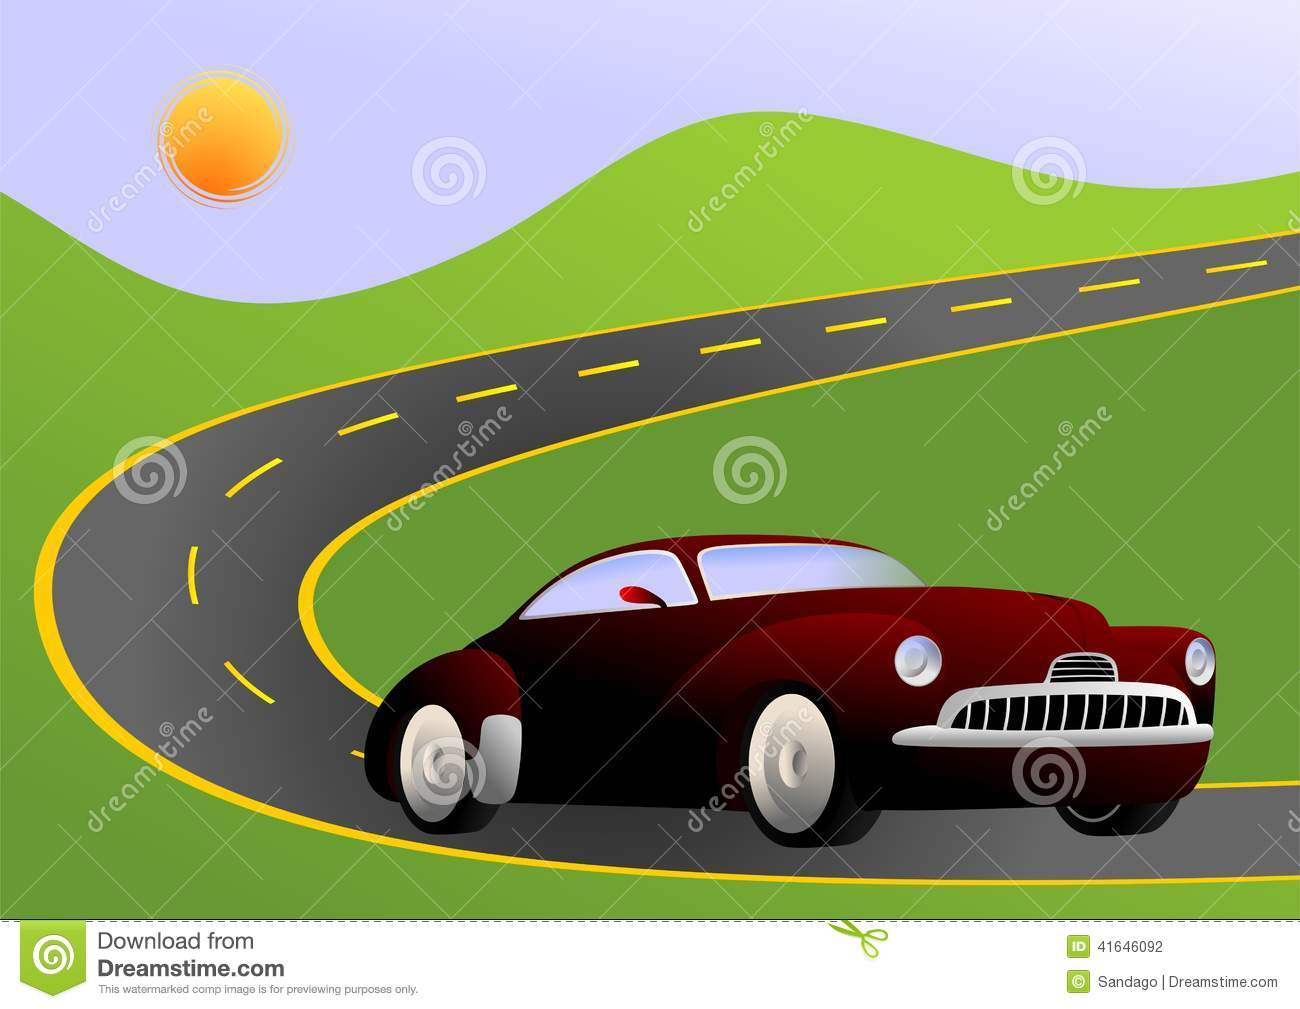 clipart car driving on road - photo #31